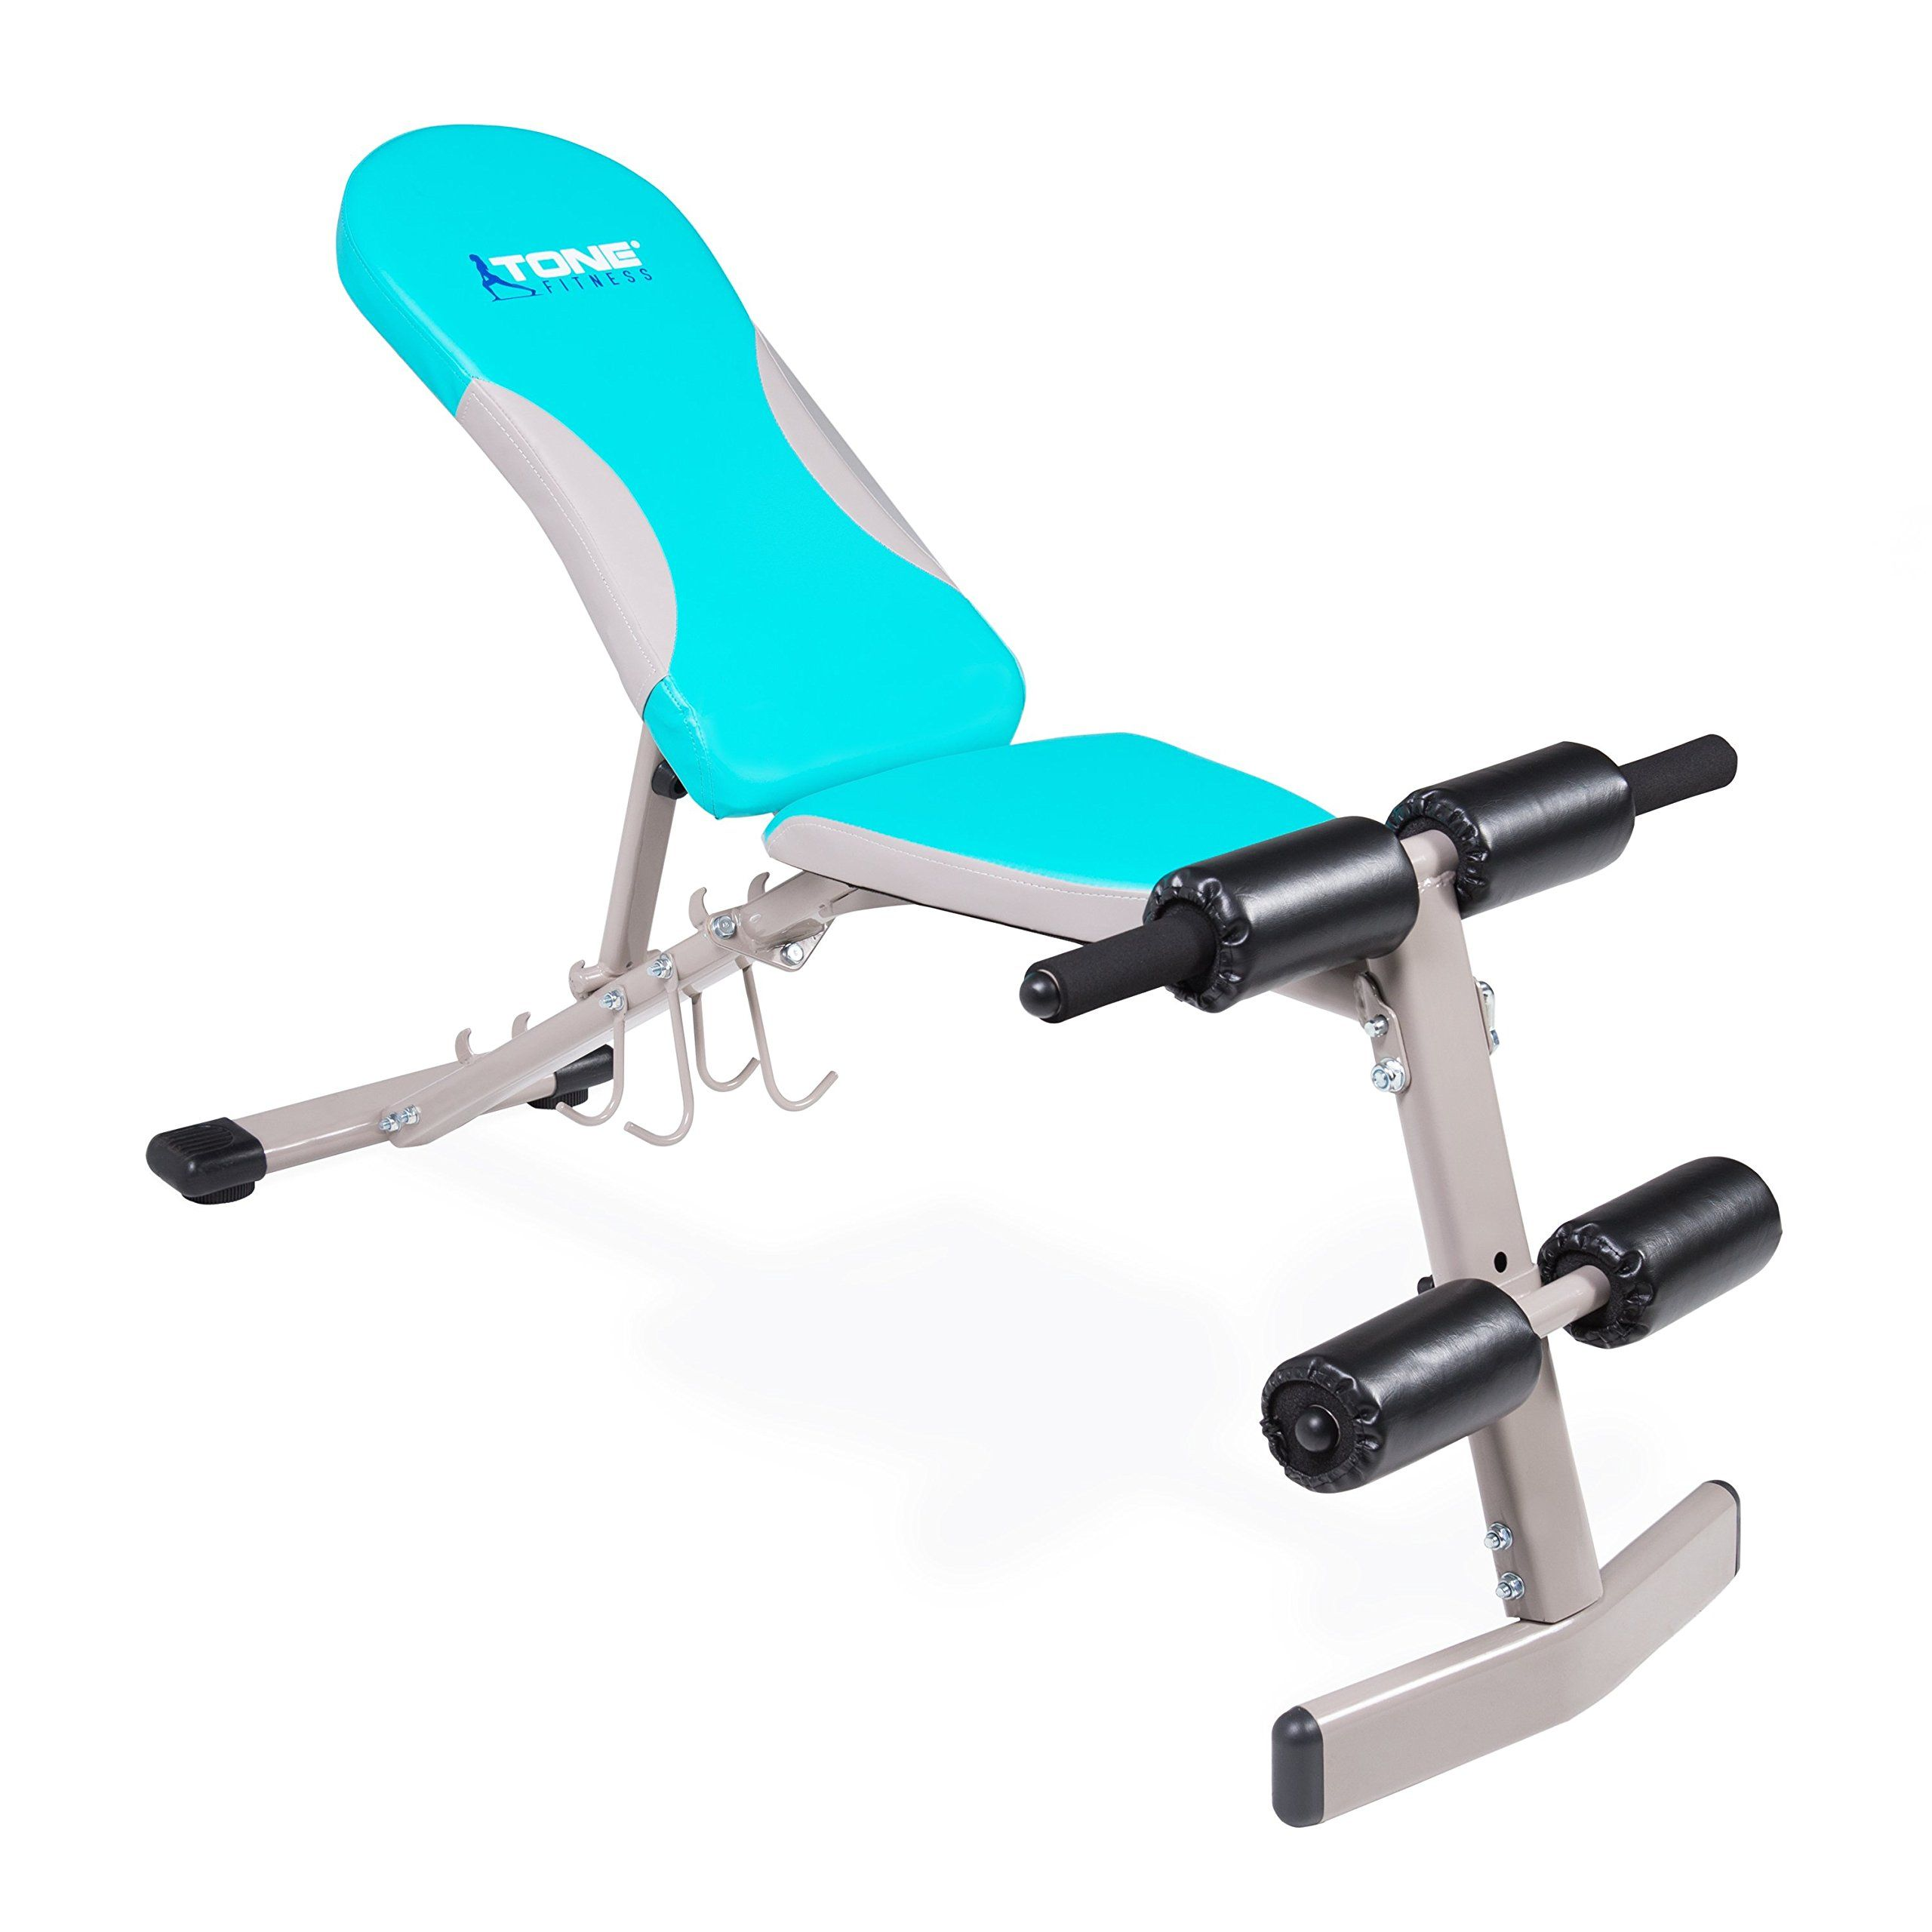 Tone Fitness Flat/Incline/Decline Bench >>> See this